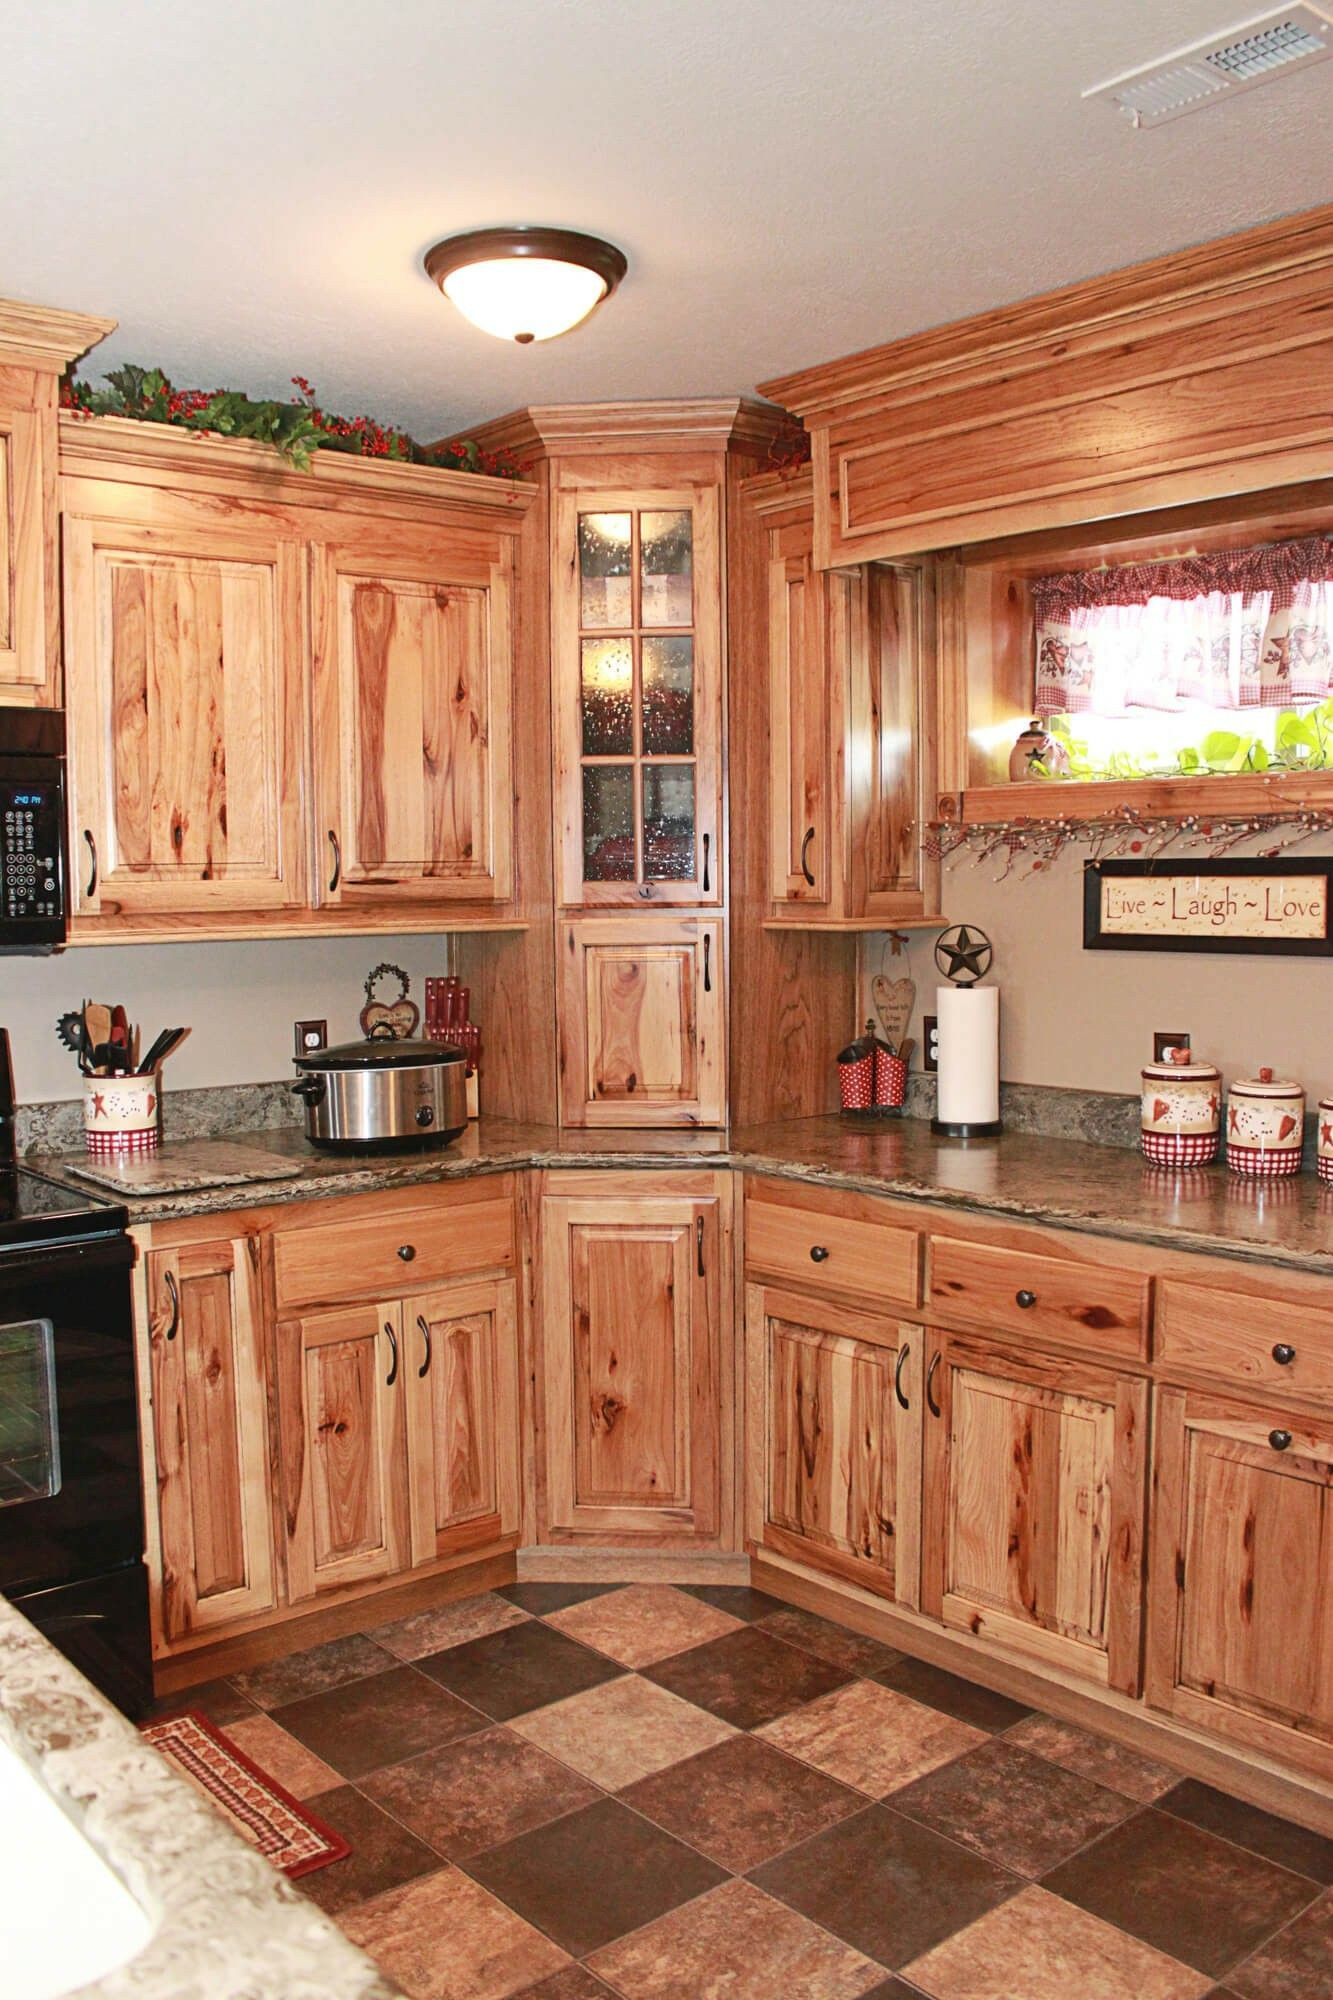 Hickory kitchen cabinets kitchen pinterest hickory Kitchen colors with natural wood cabinets